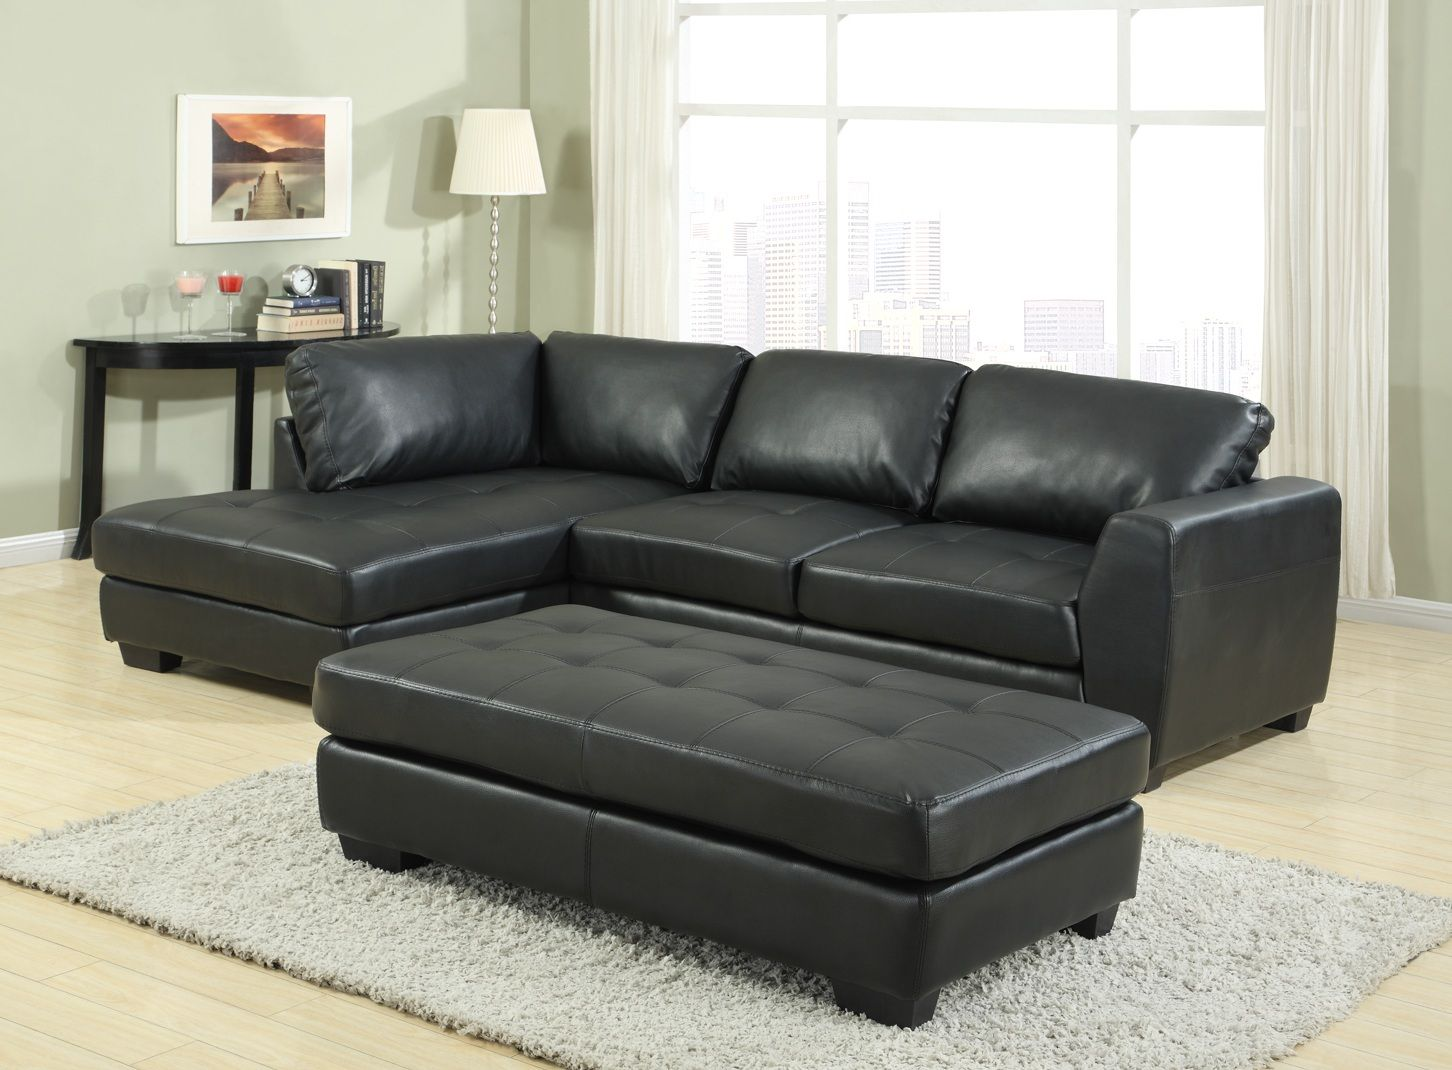 2018 Leather Corner Sofa Beds You Cannot Ask For More Leather